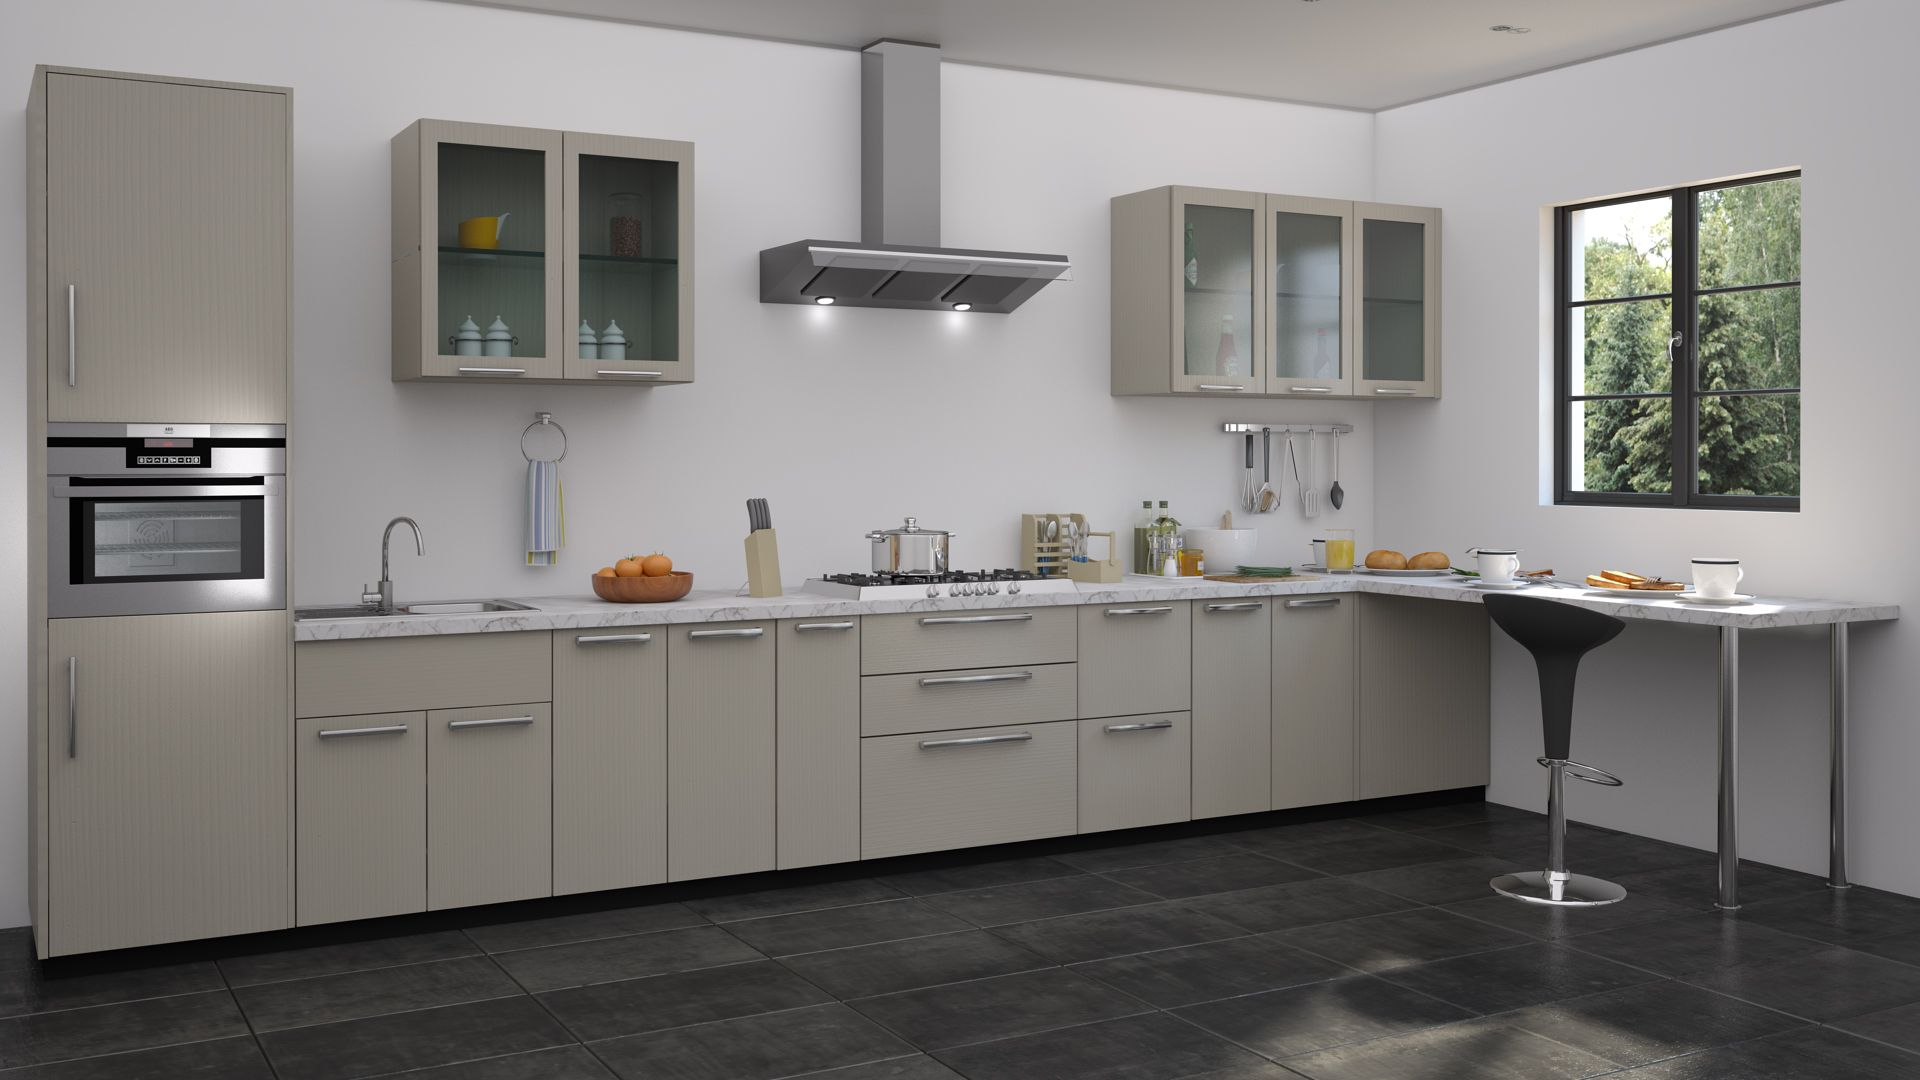 Straight modular kitchen ideas